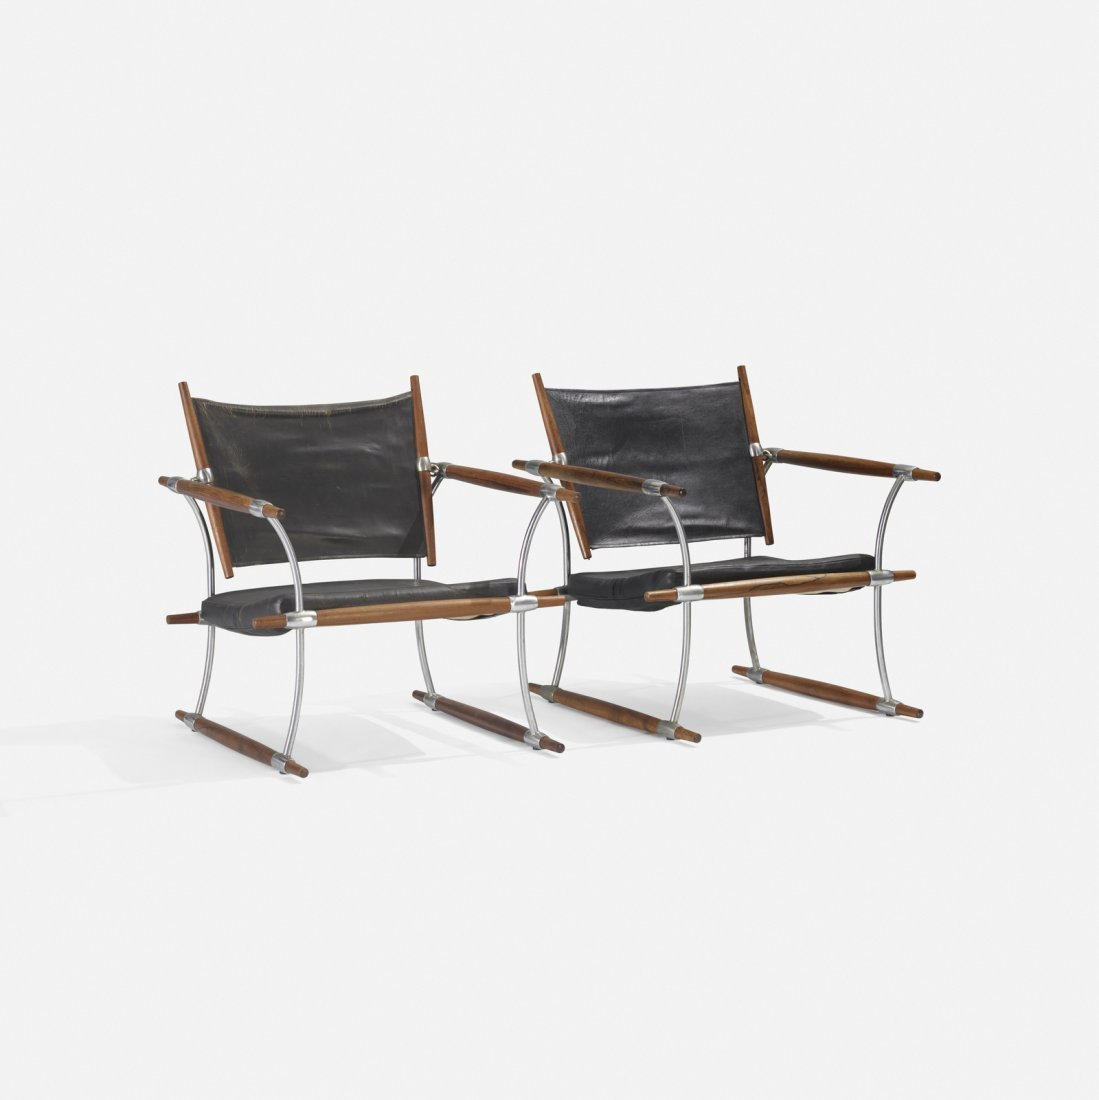 Jens Quistgaard, Stocke lounge chairs, pair